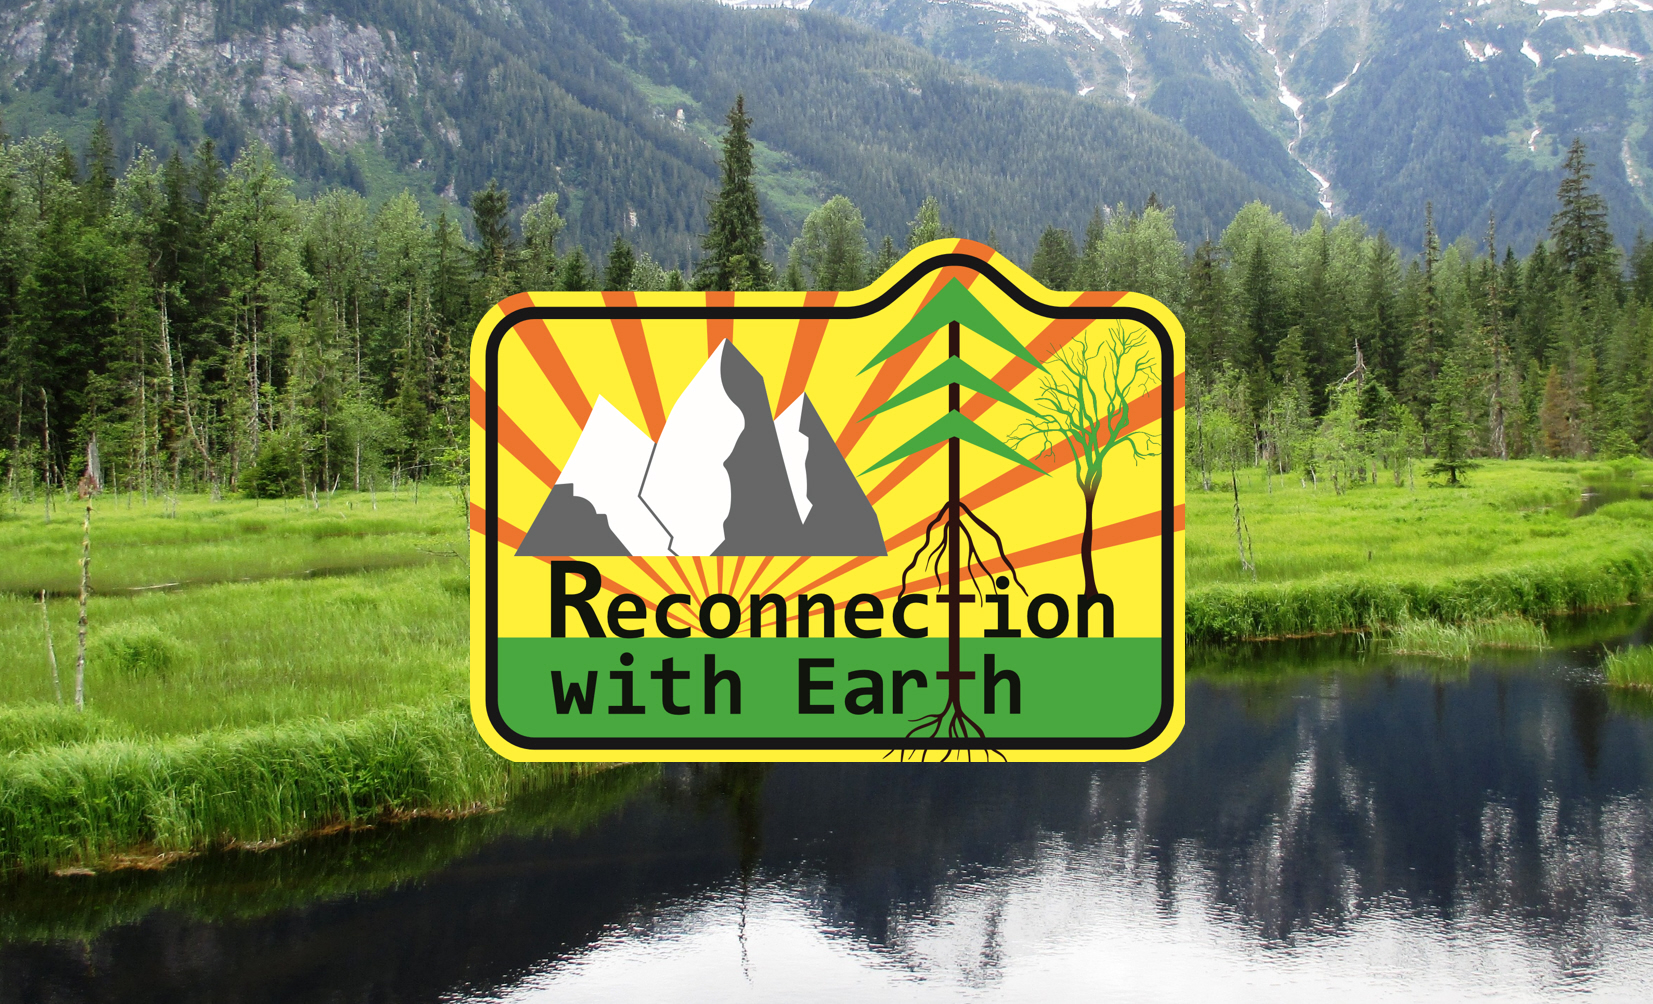 Reconnection with Earth SNC